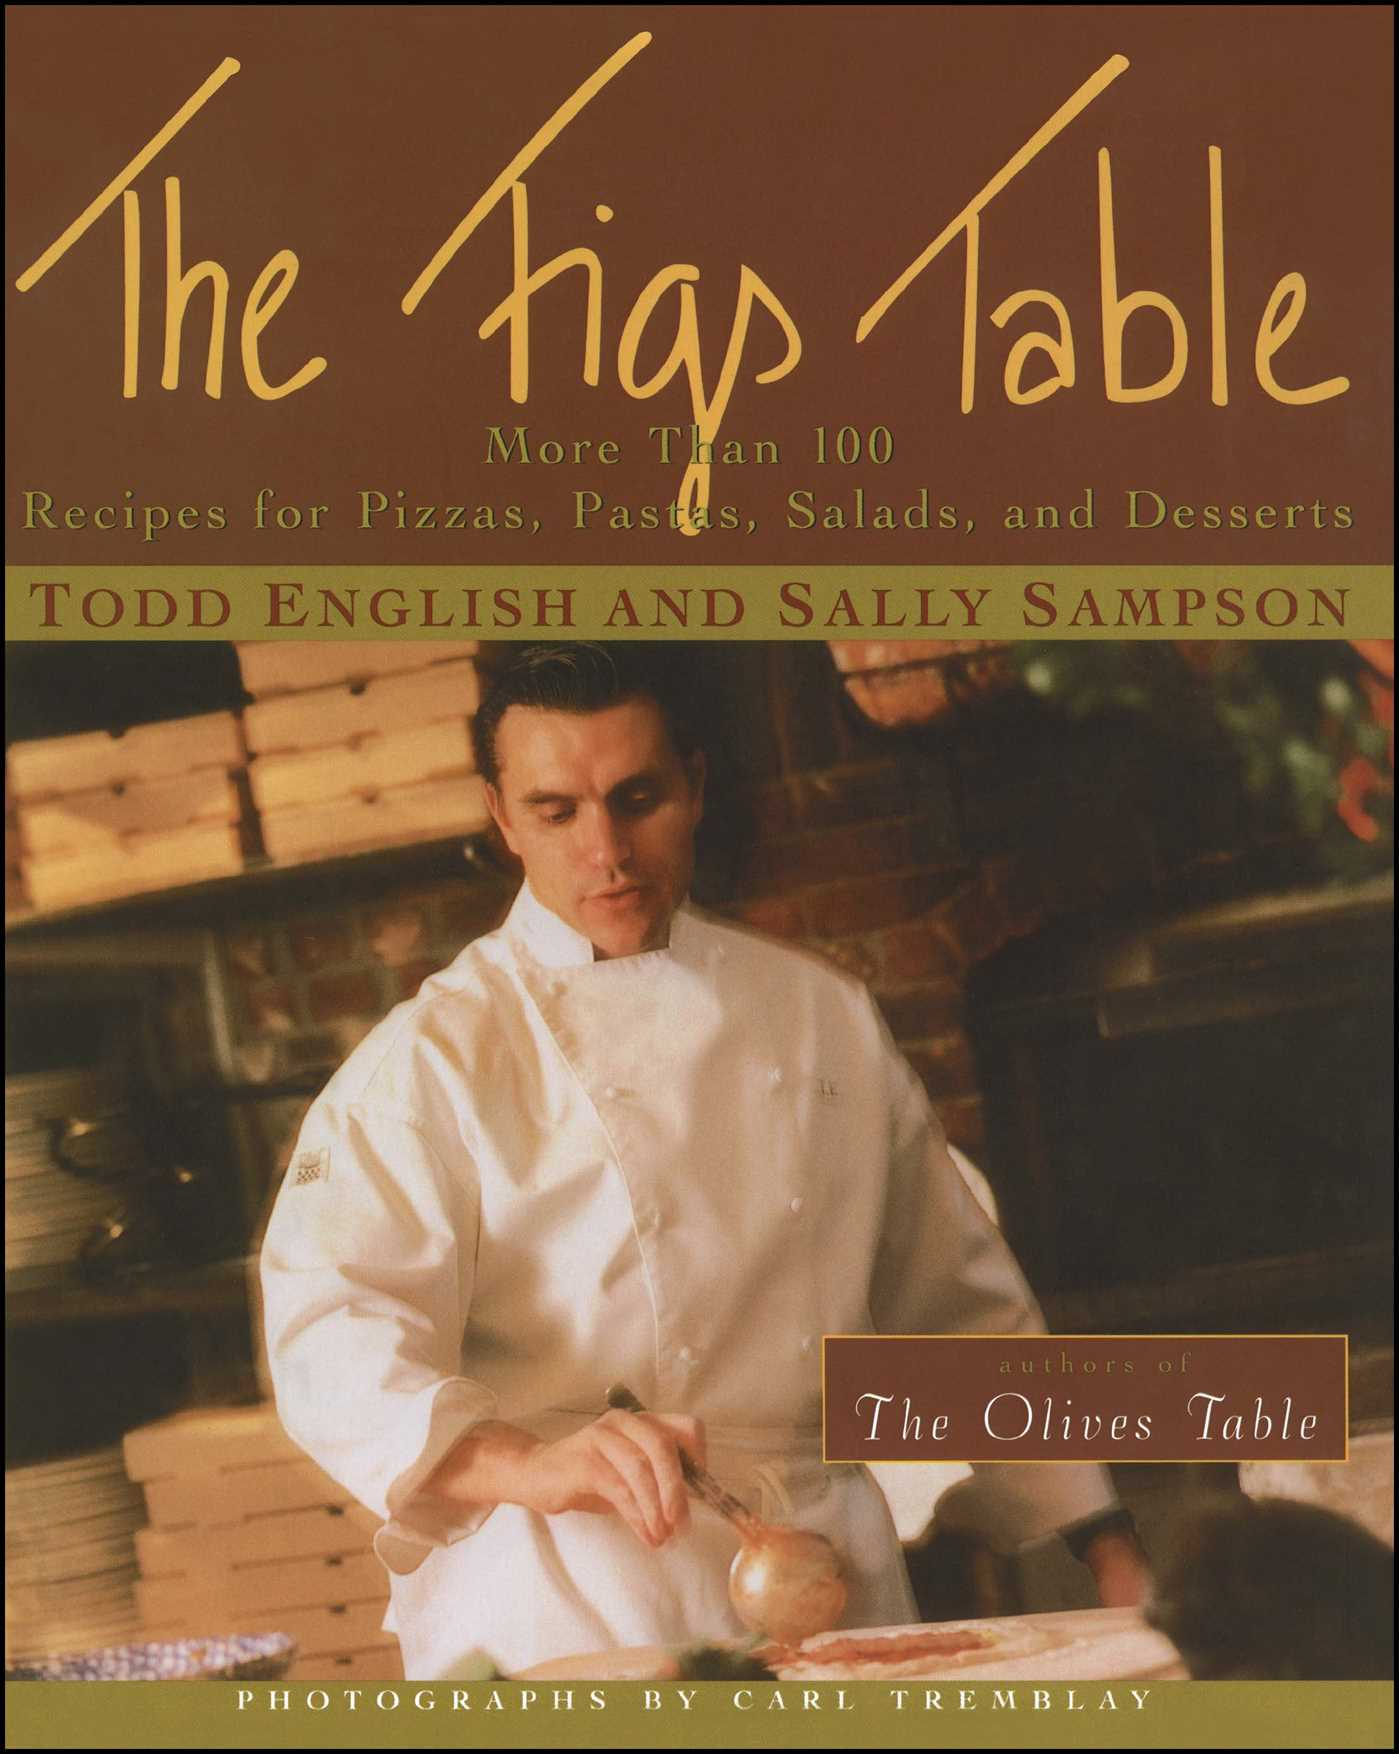 The figs table 9781501190704 hr